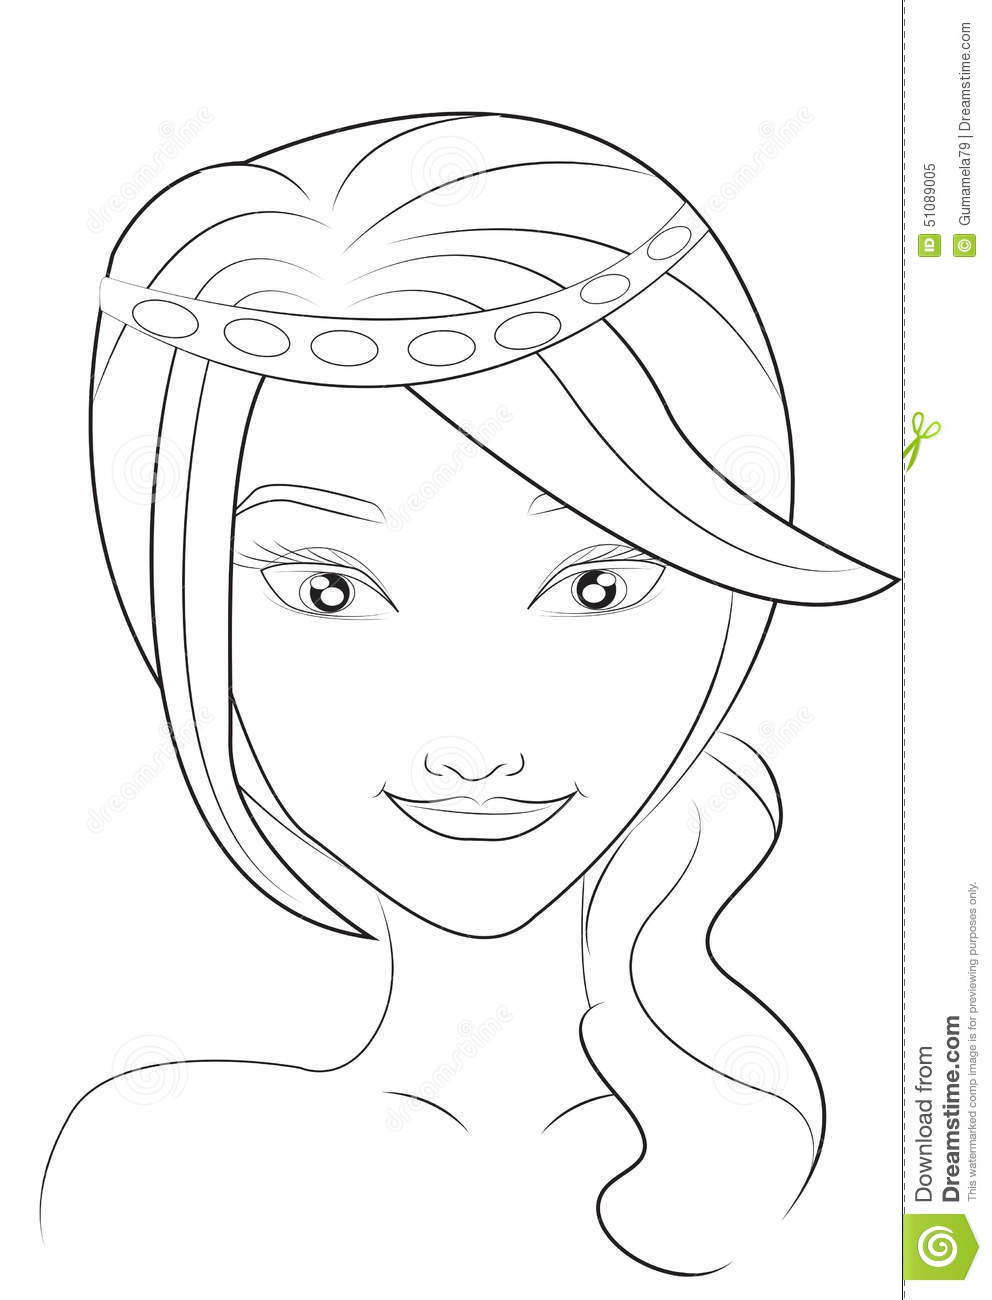 girl face coloring pages - photo#24